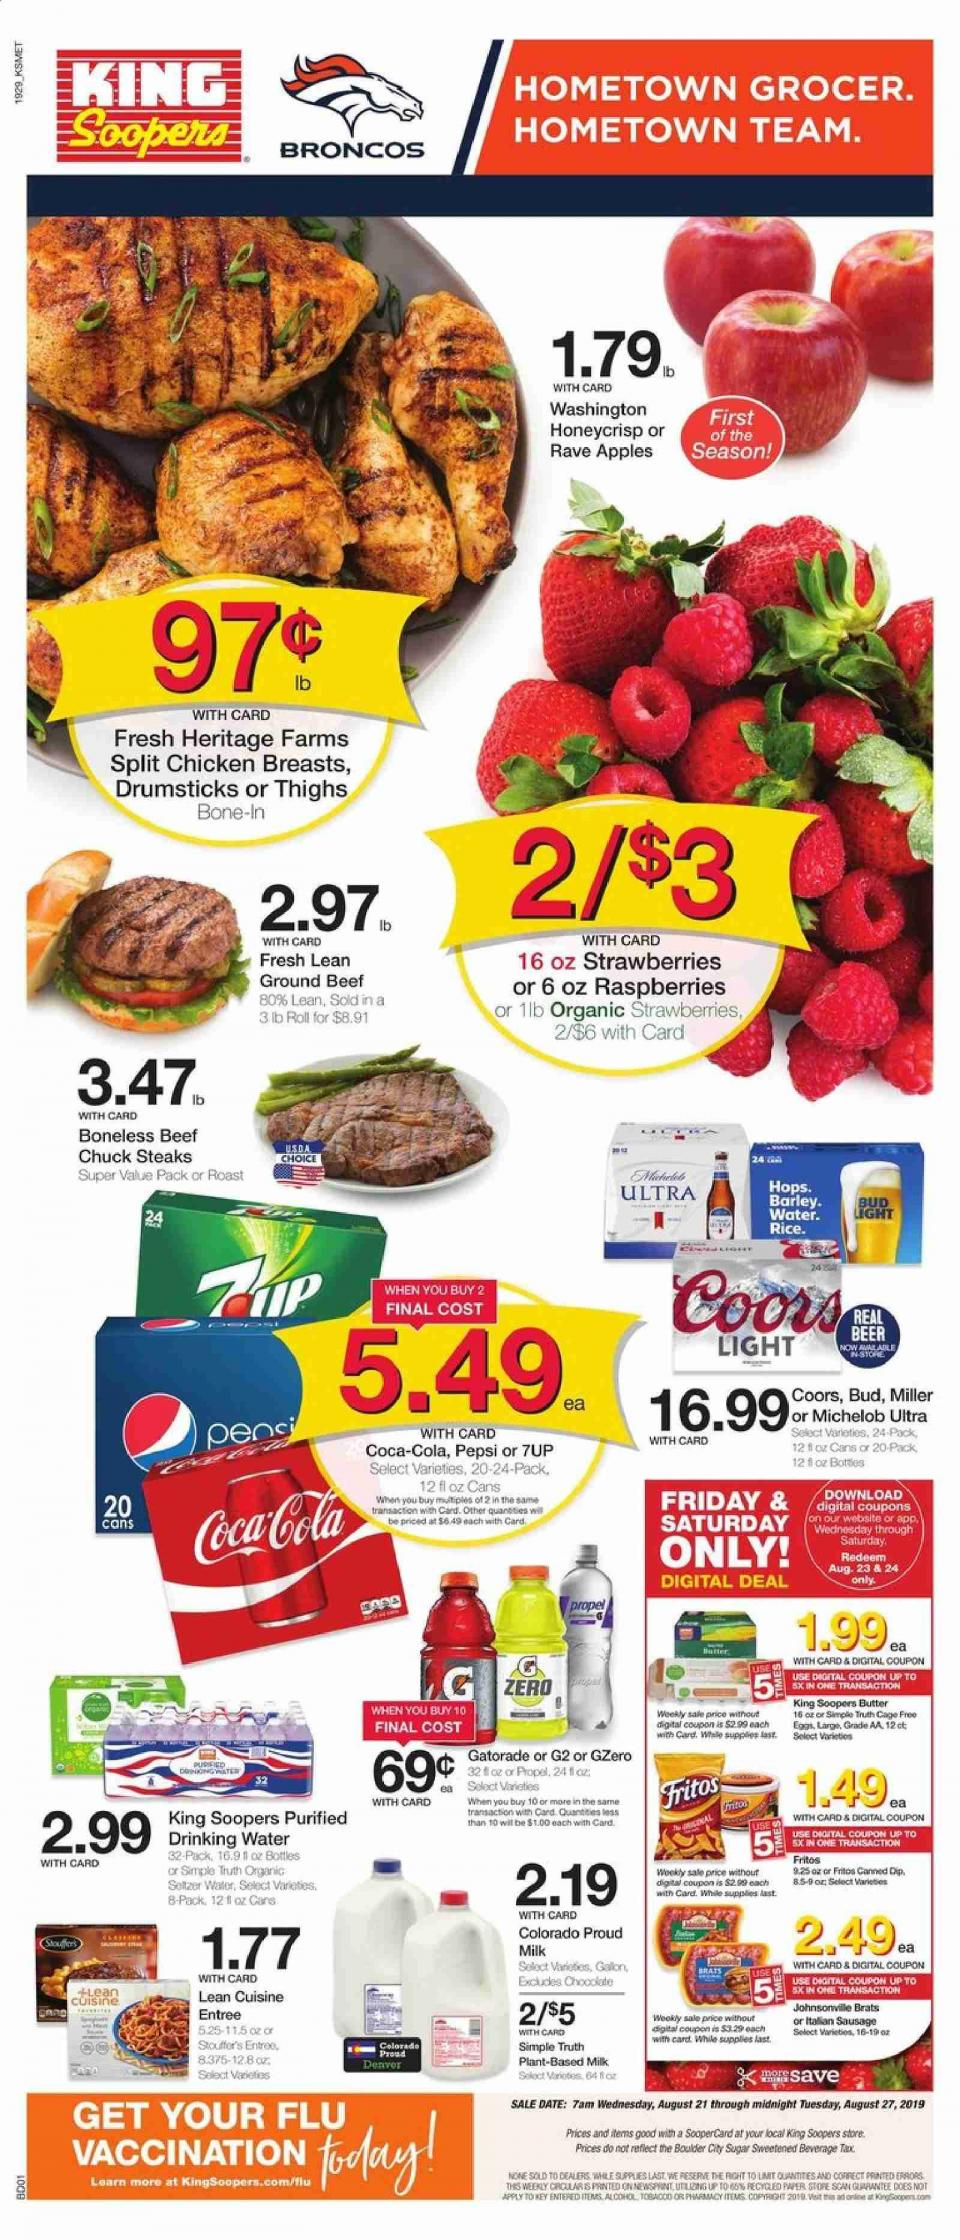 king soopers ad aug 21 27 2019